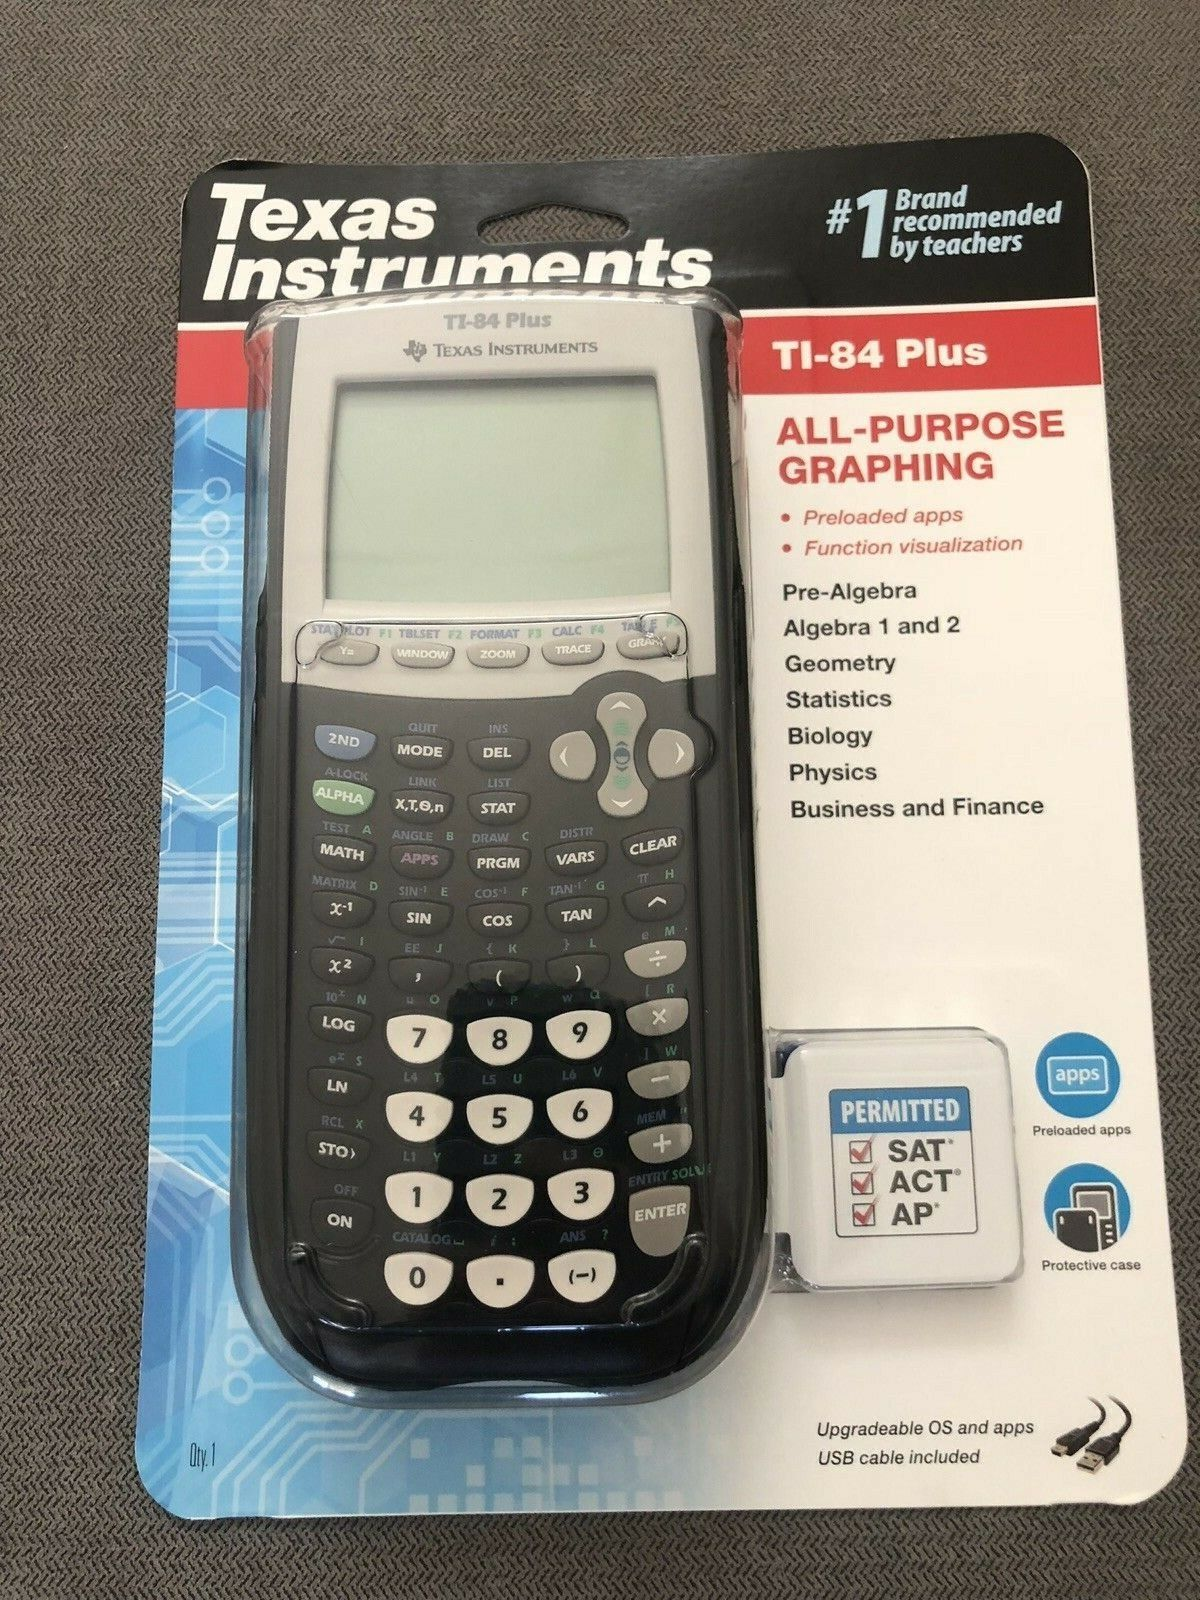 Texas Instruments TI-84 Plus Graphing Calculator - Black - B